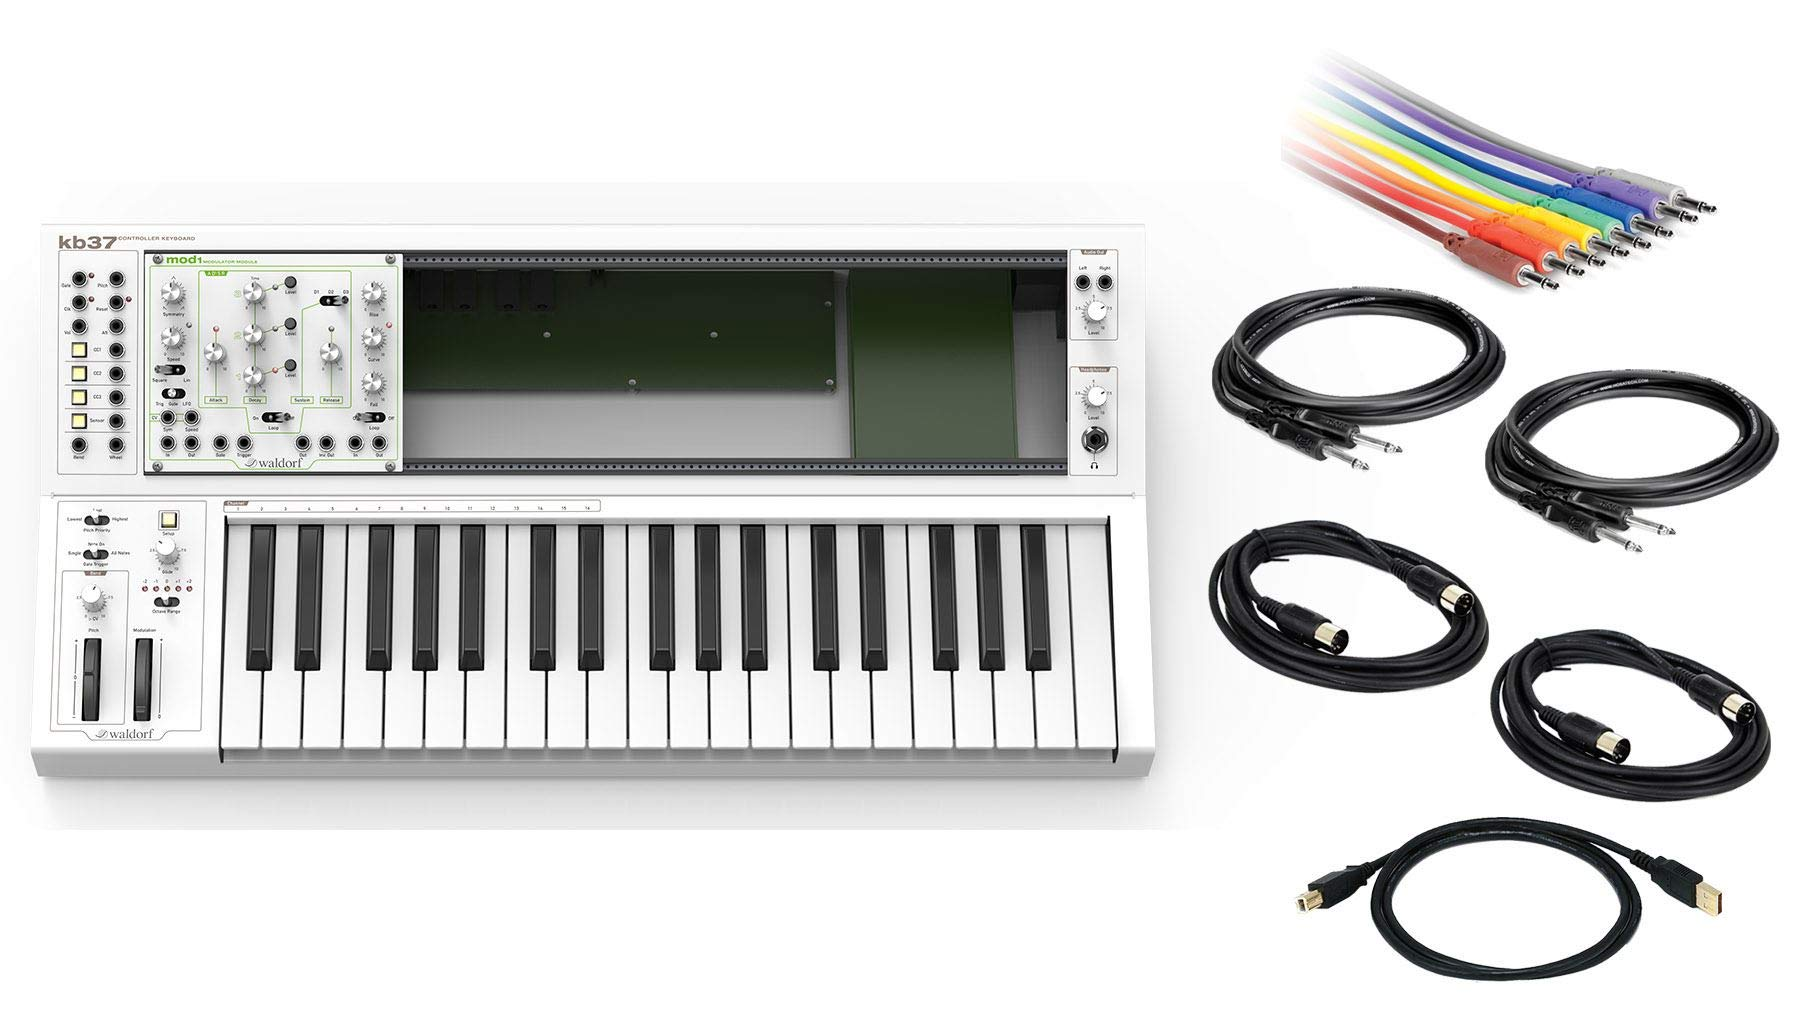 Waldorf KB37 Eurorack Keyboard Bundle with CV Patch Cables, 1/4'' Instrument, MIDI & USB Cables (7 Items)